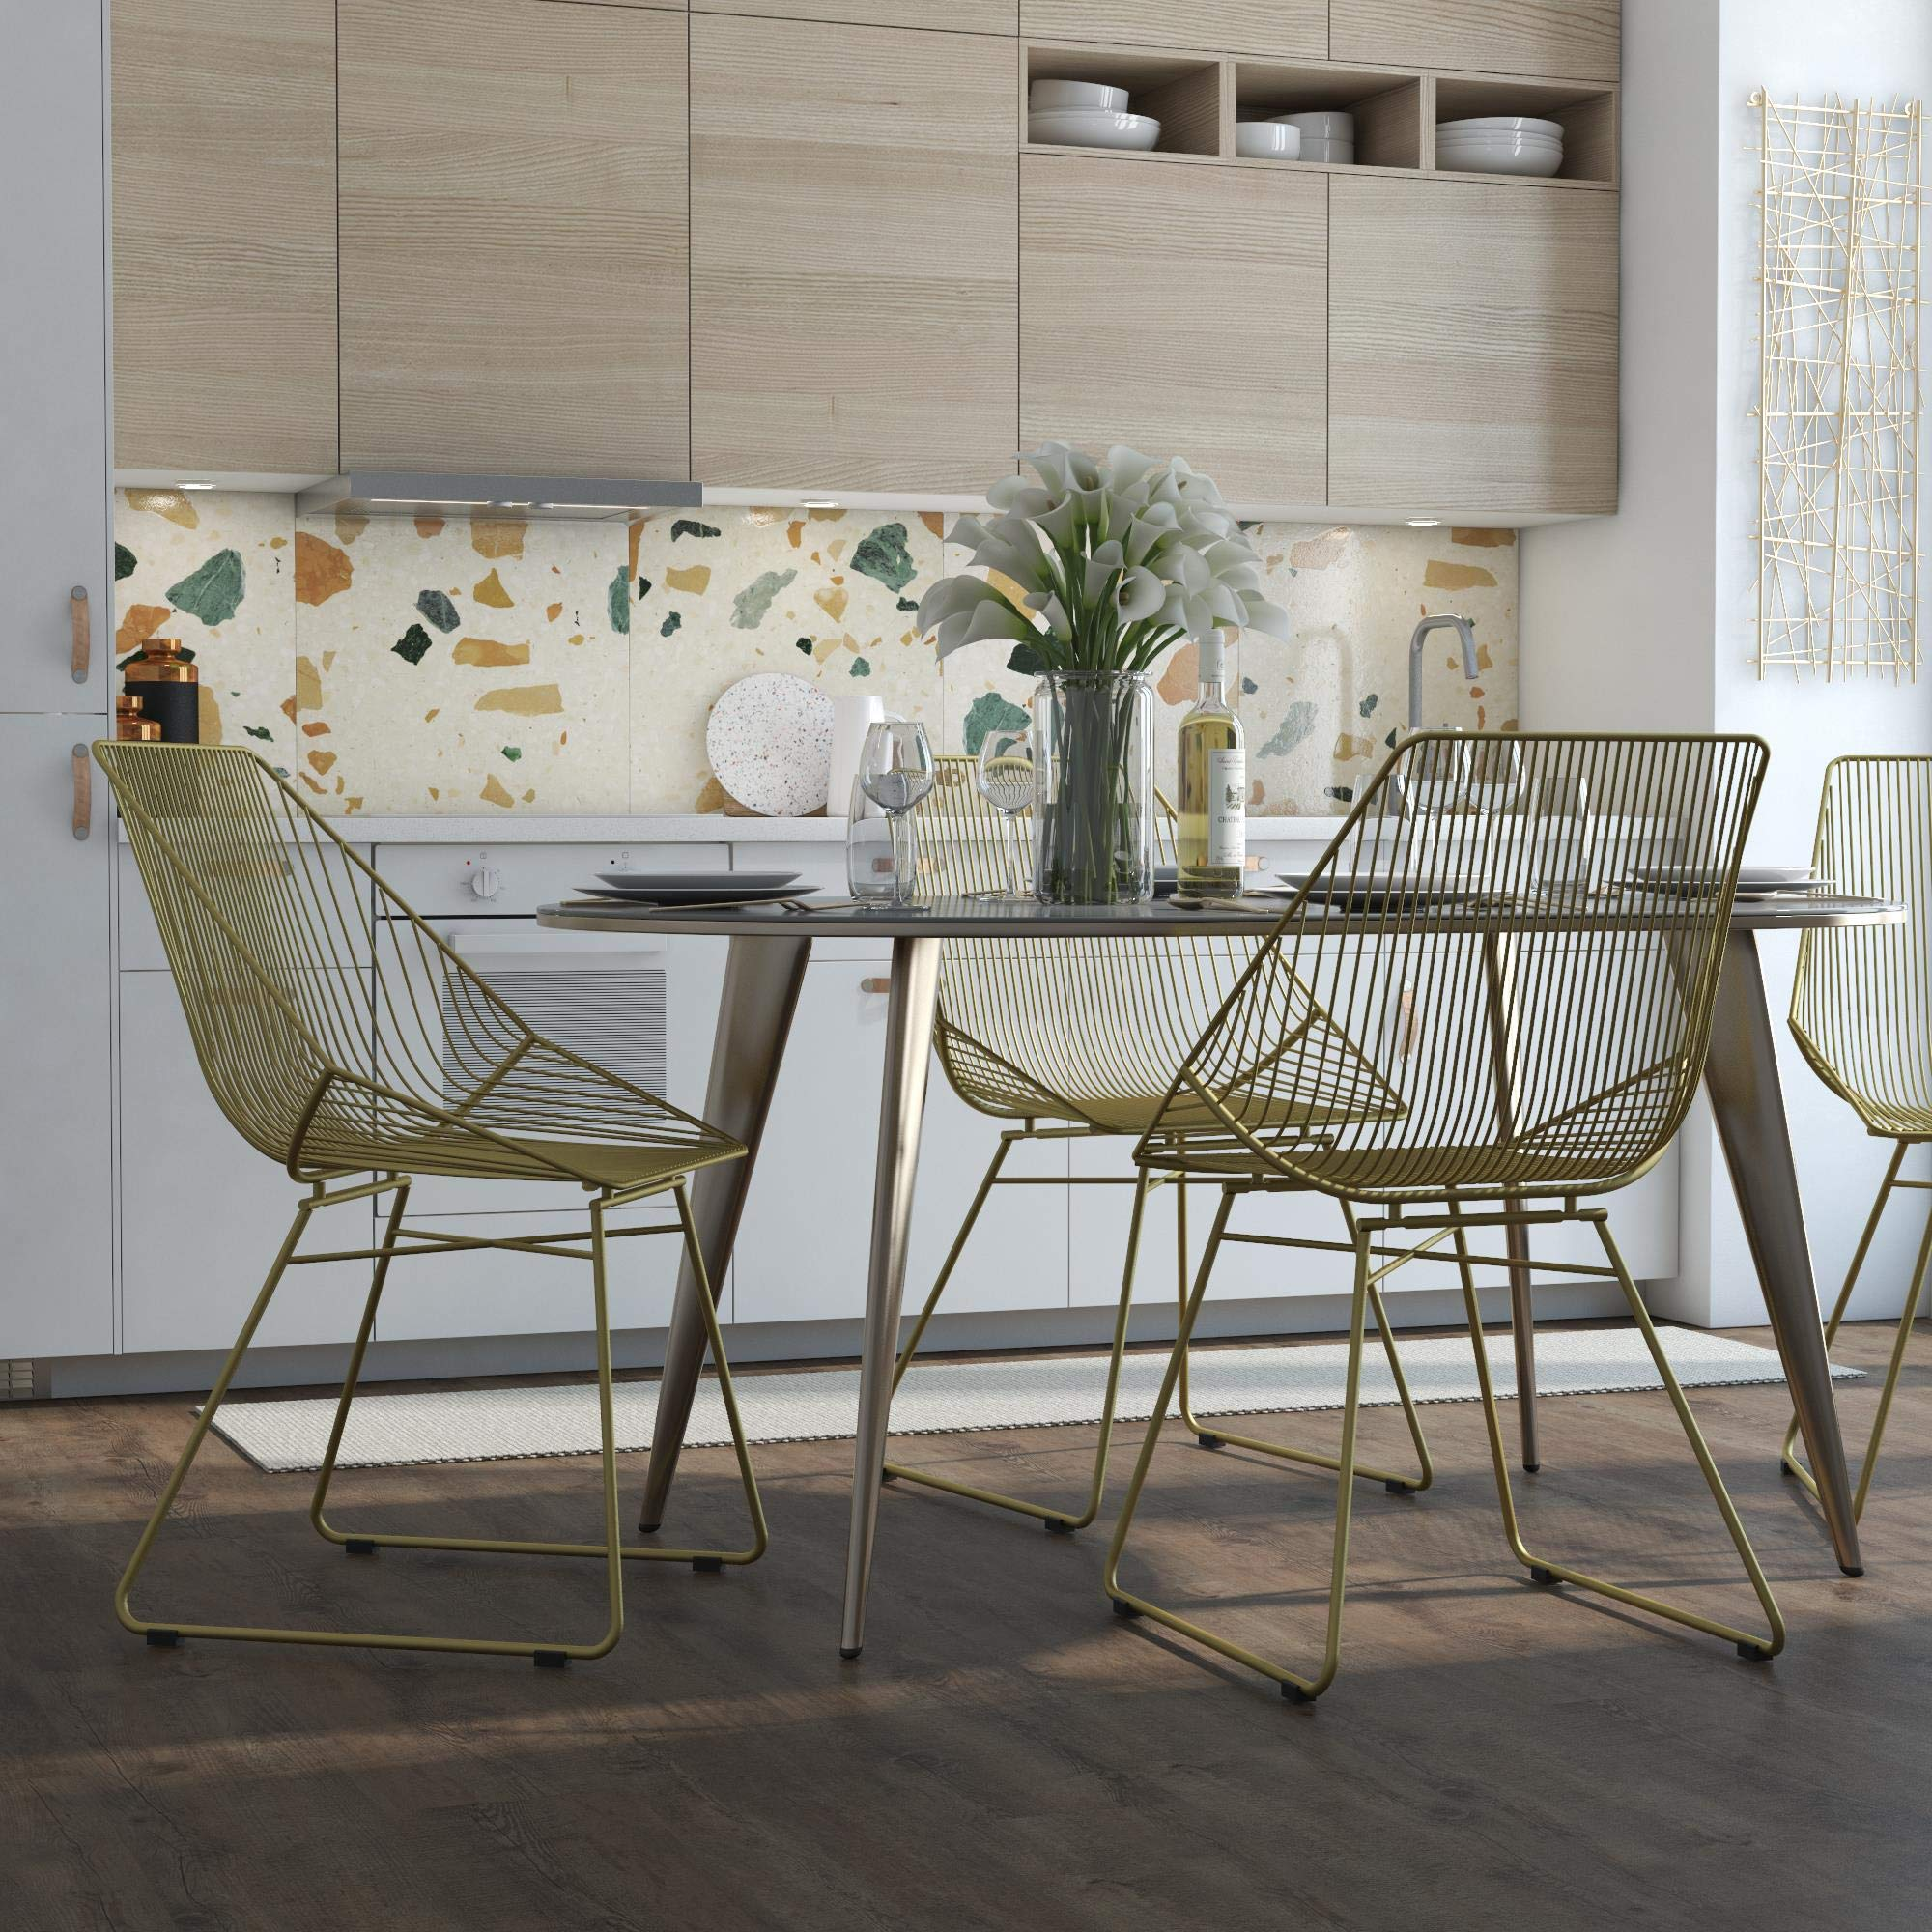 CosmoLiving by Cosmopolitan CosmoLiving Ellis Modern Accent, Gold Metal Chair by CosmoLiving by Cosmopolitan